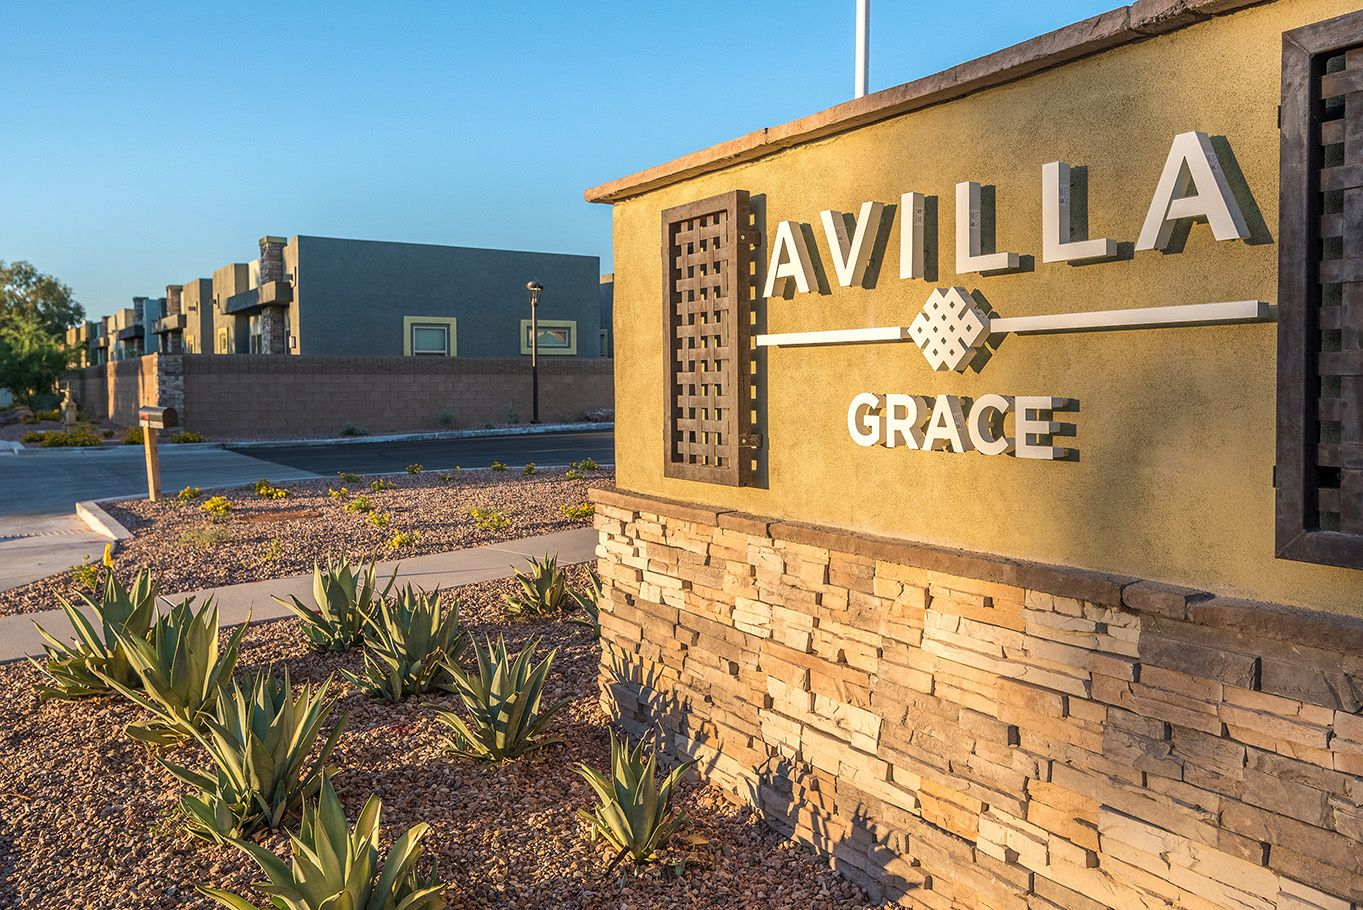 Avilla Grace | Exterior | Heritage district, Exterior ... on Outdoor Living Space Builders Near Me  id=48226